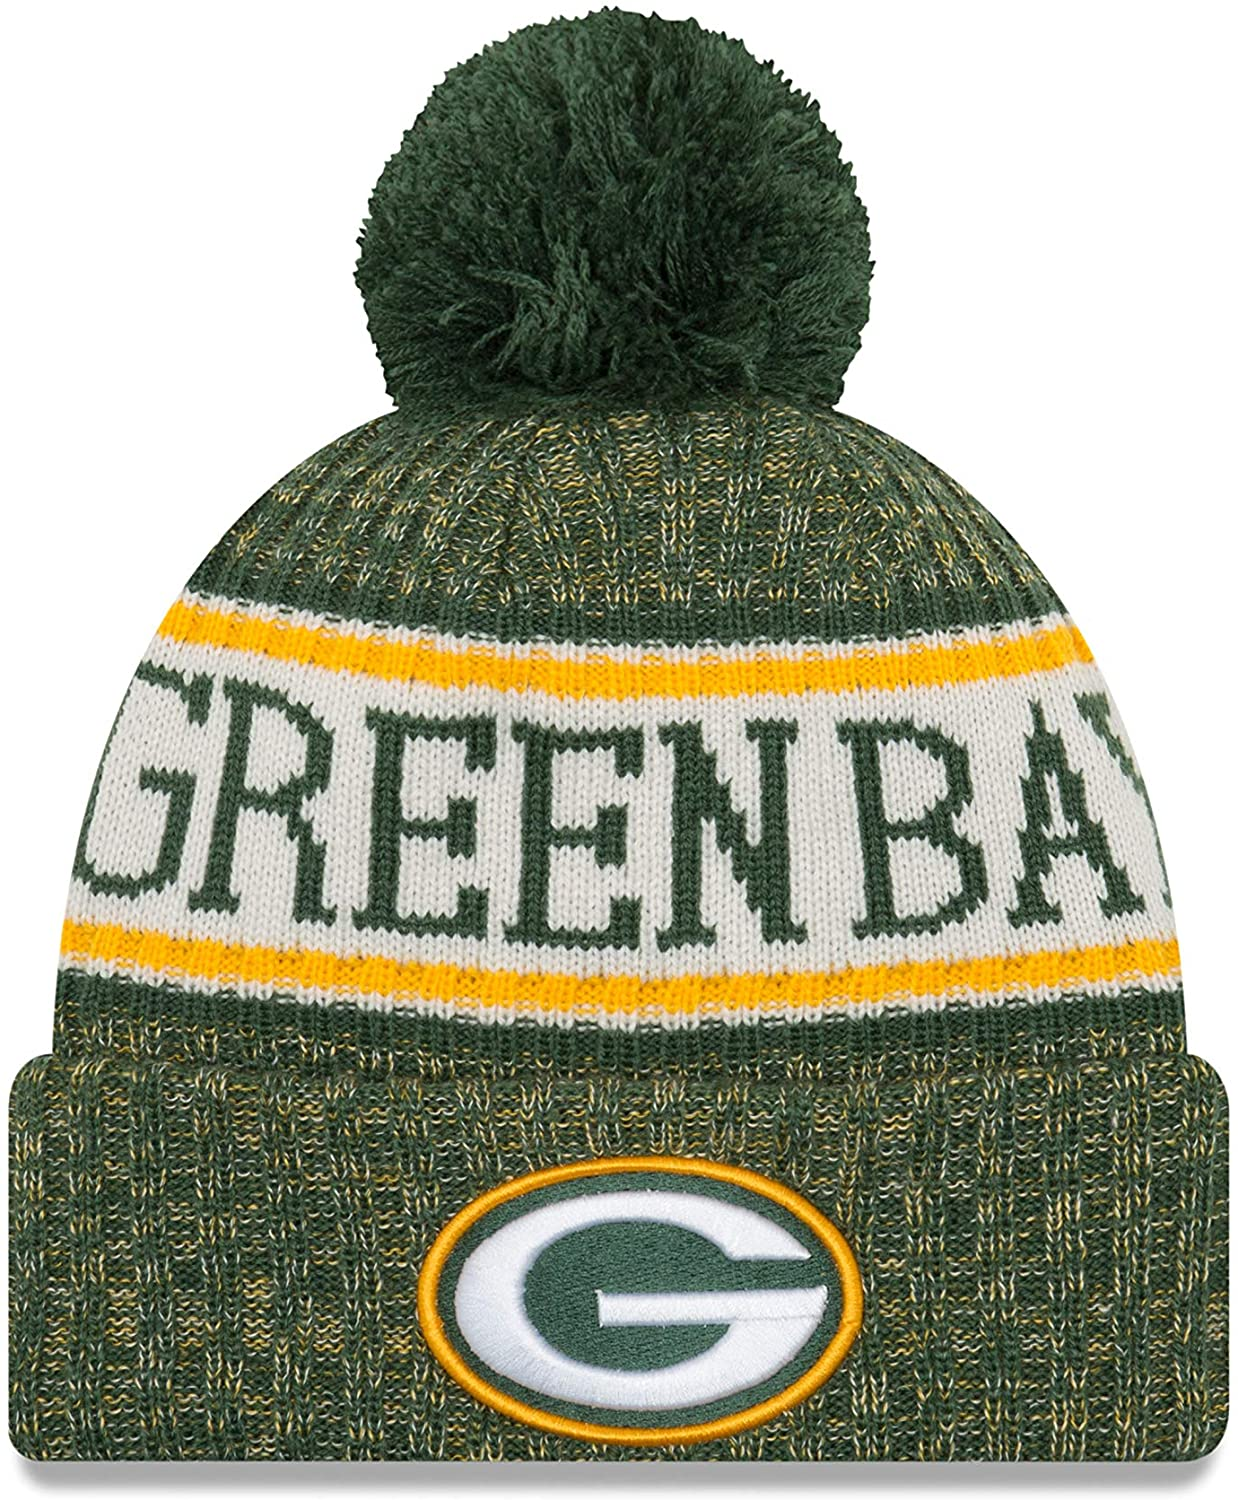 New Era Youth Green Bay Packers Sport Knit NFL Beanie Black, Jr./ Youth